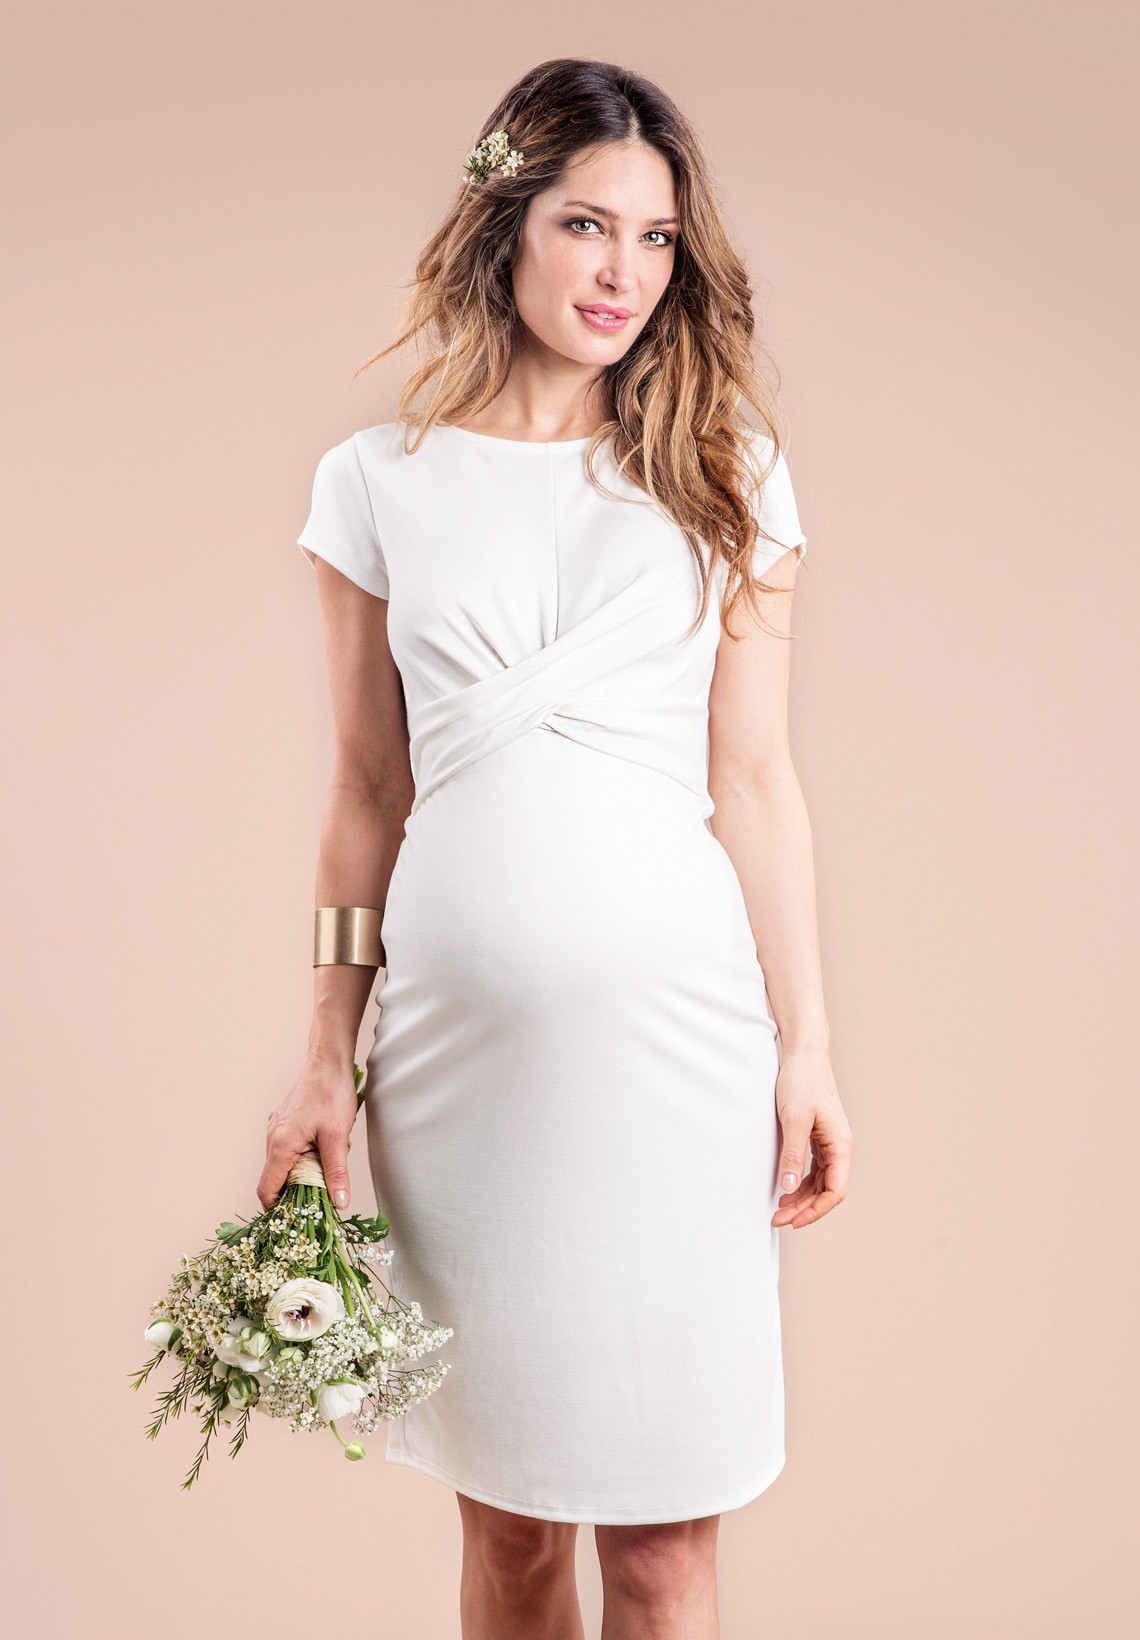 Populaire Robe grossesse - AUDREY GW62